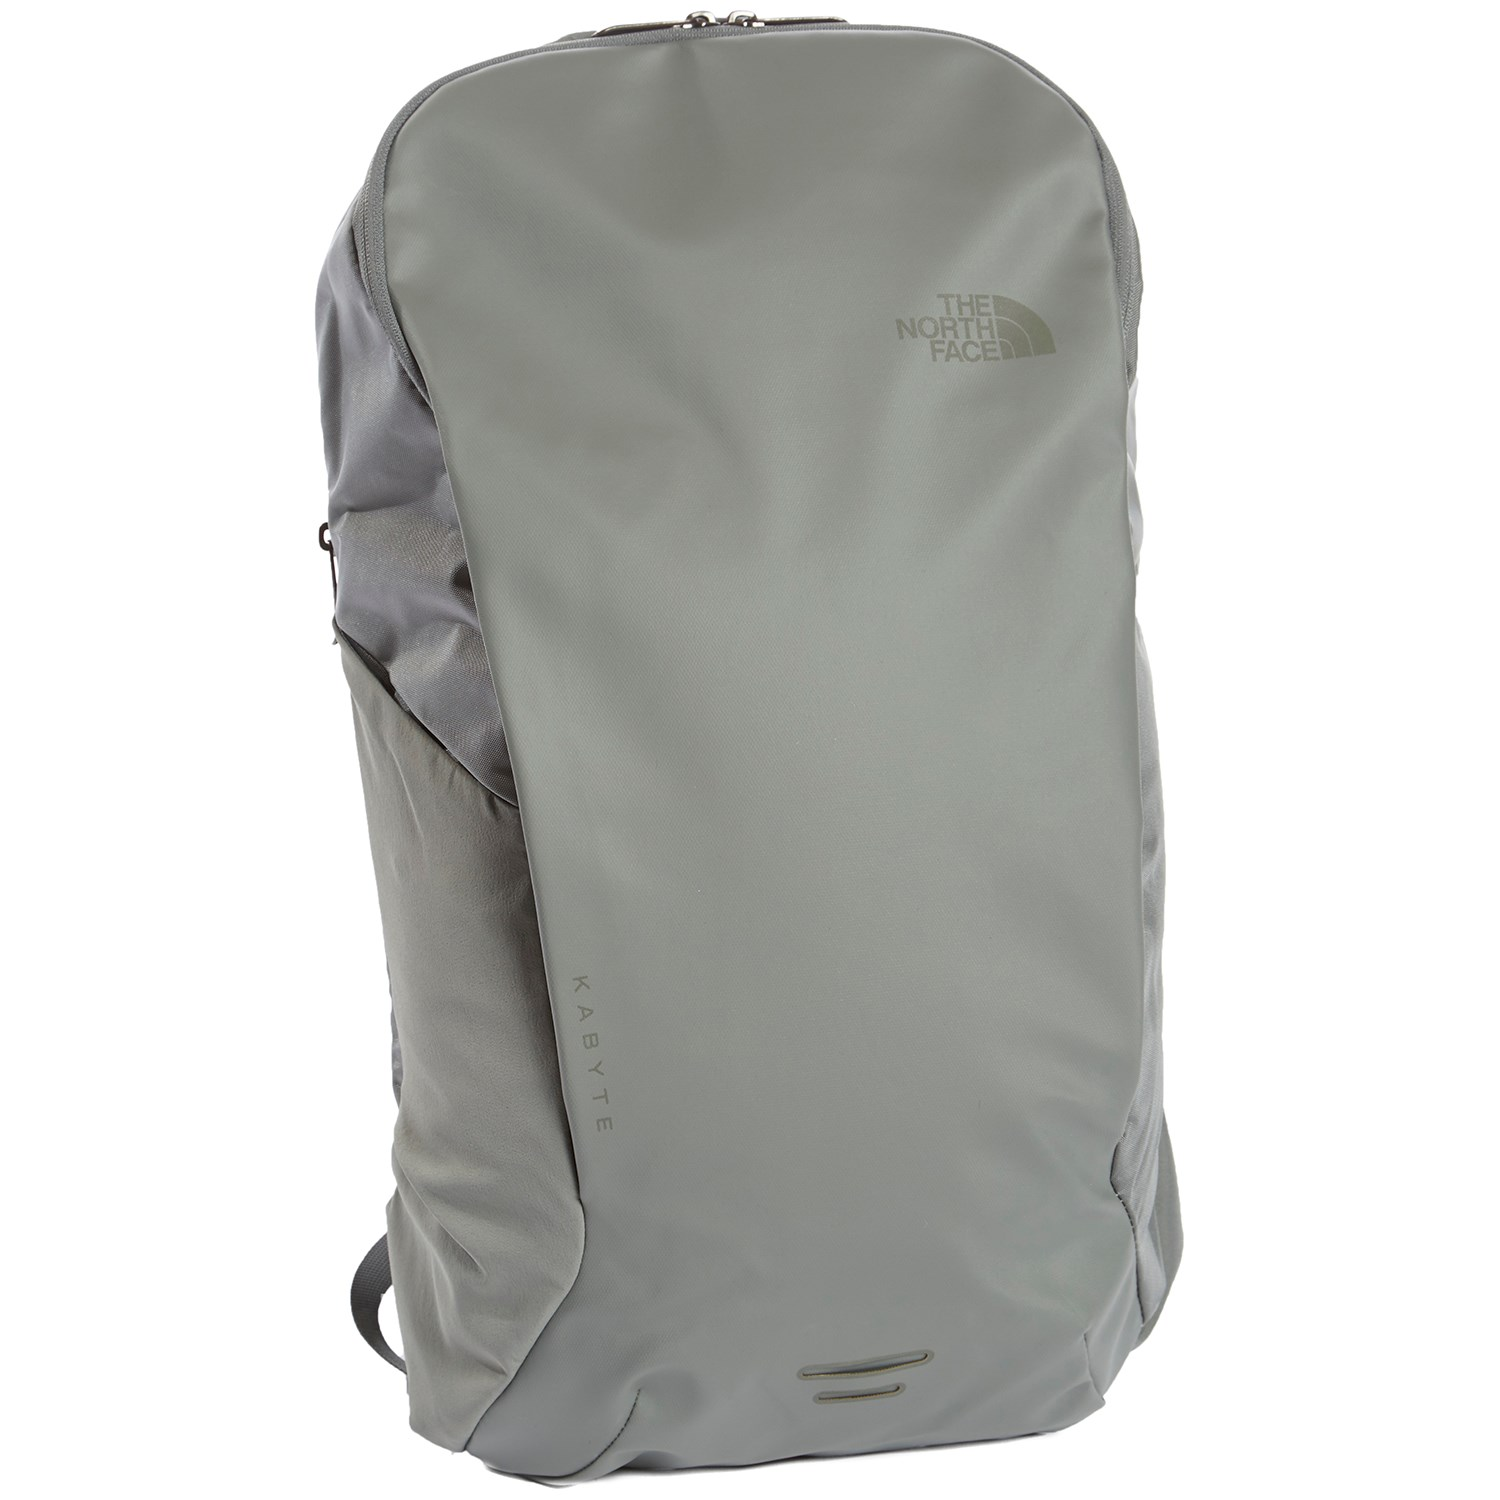 2e5b4a9cf North Face Backpack Small Shot - CEAGESP